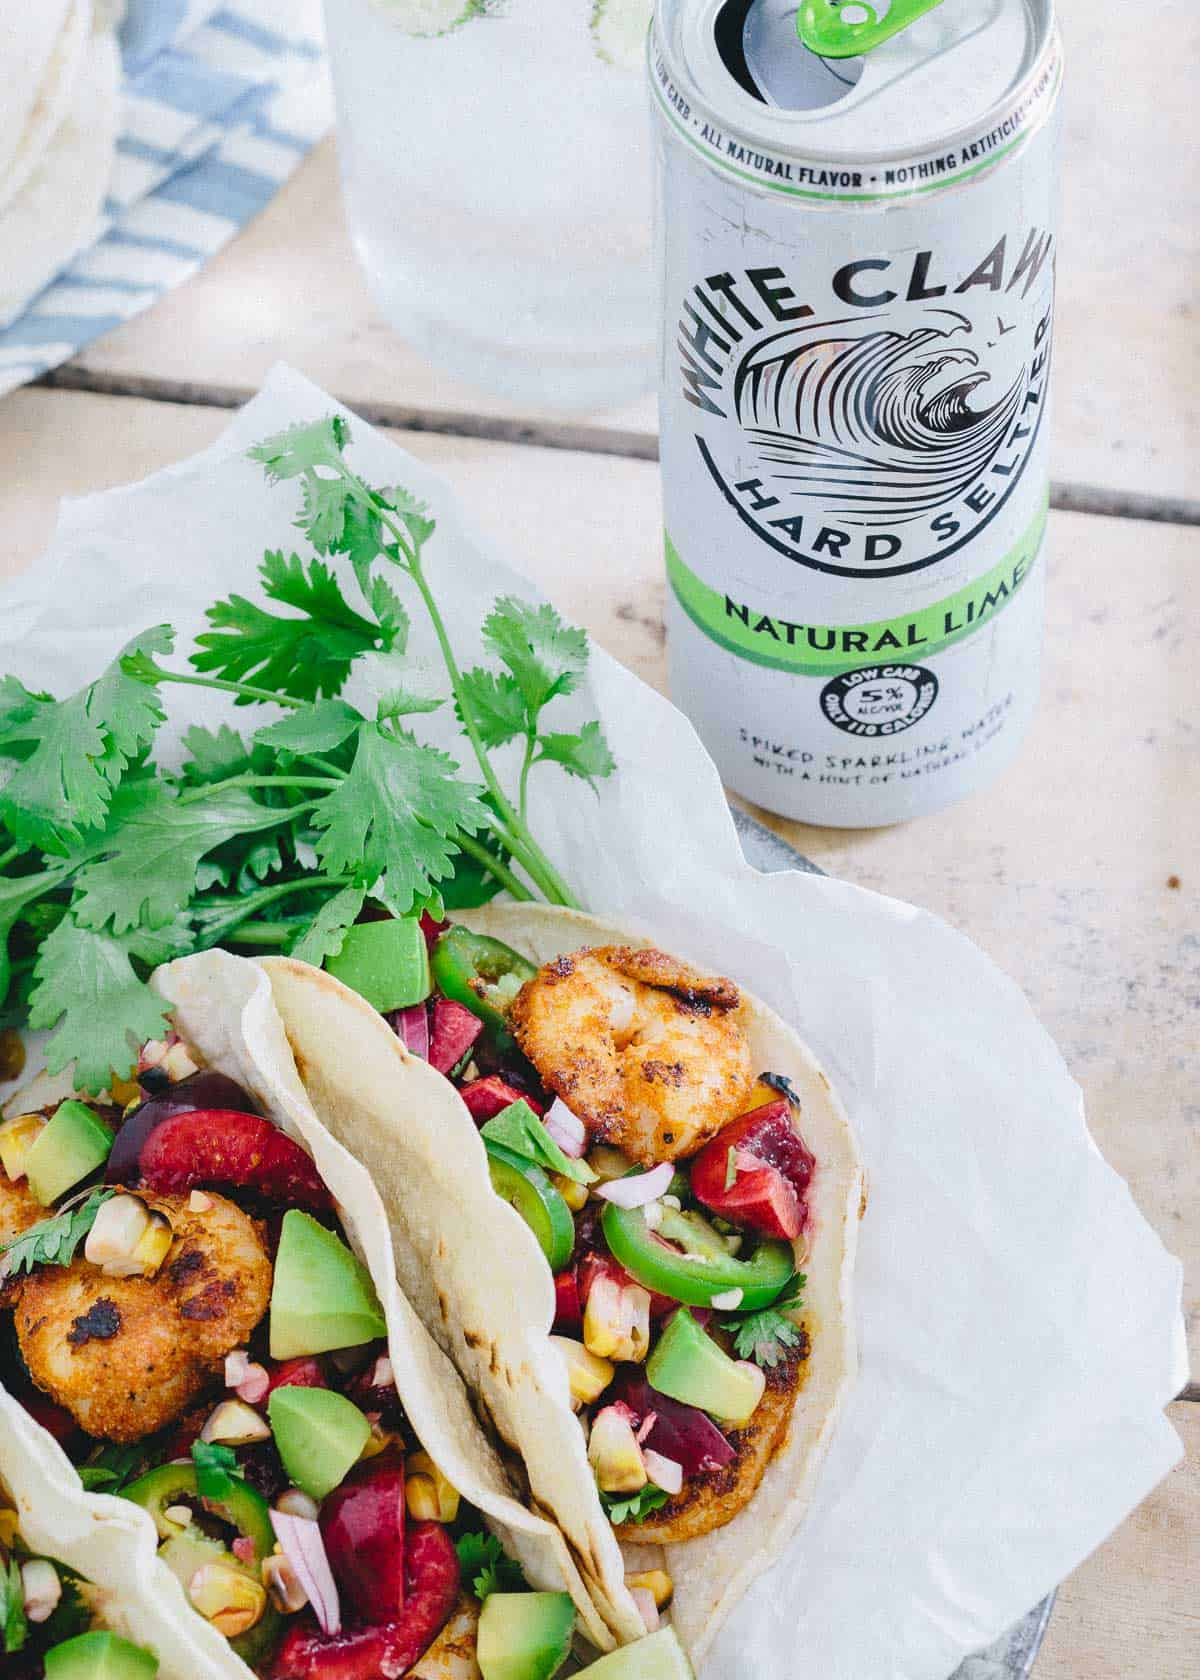 Make these Blackened Shrimp Tacos with Grilled Corn Cherry Salsa for a light summer meal.